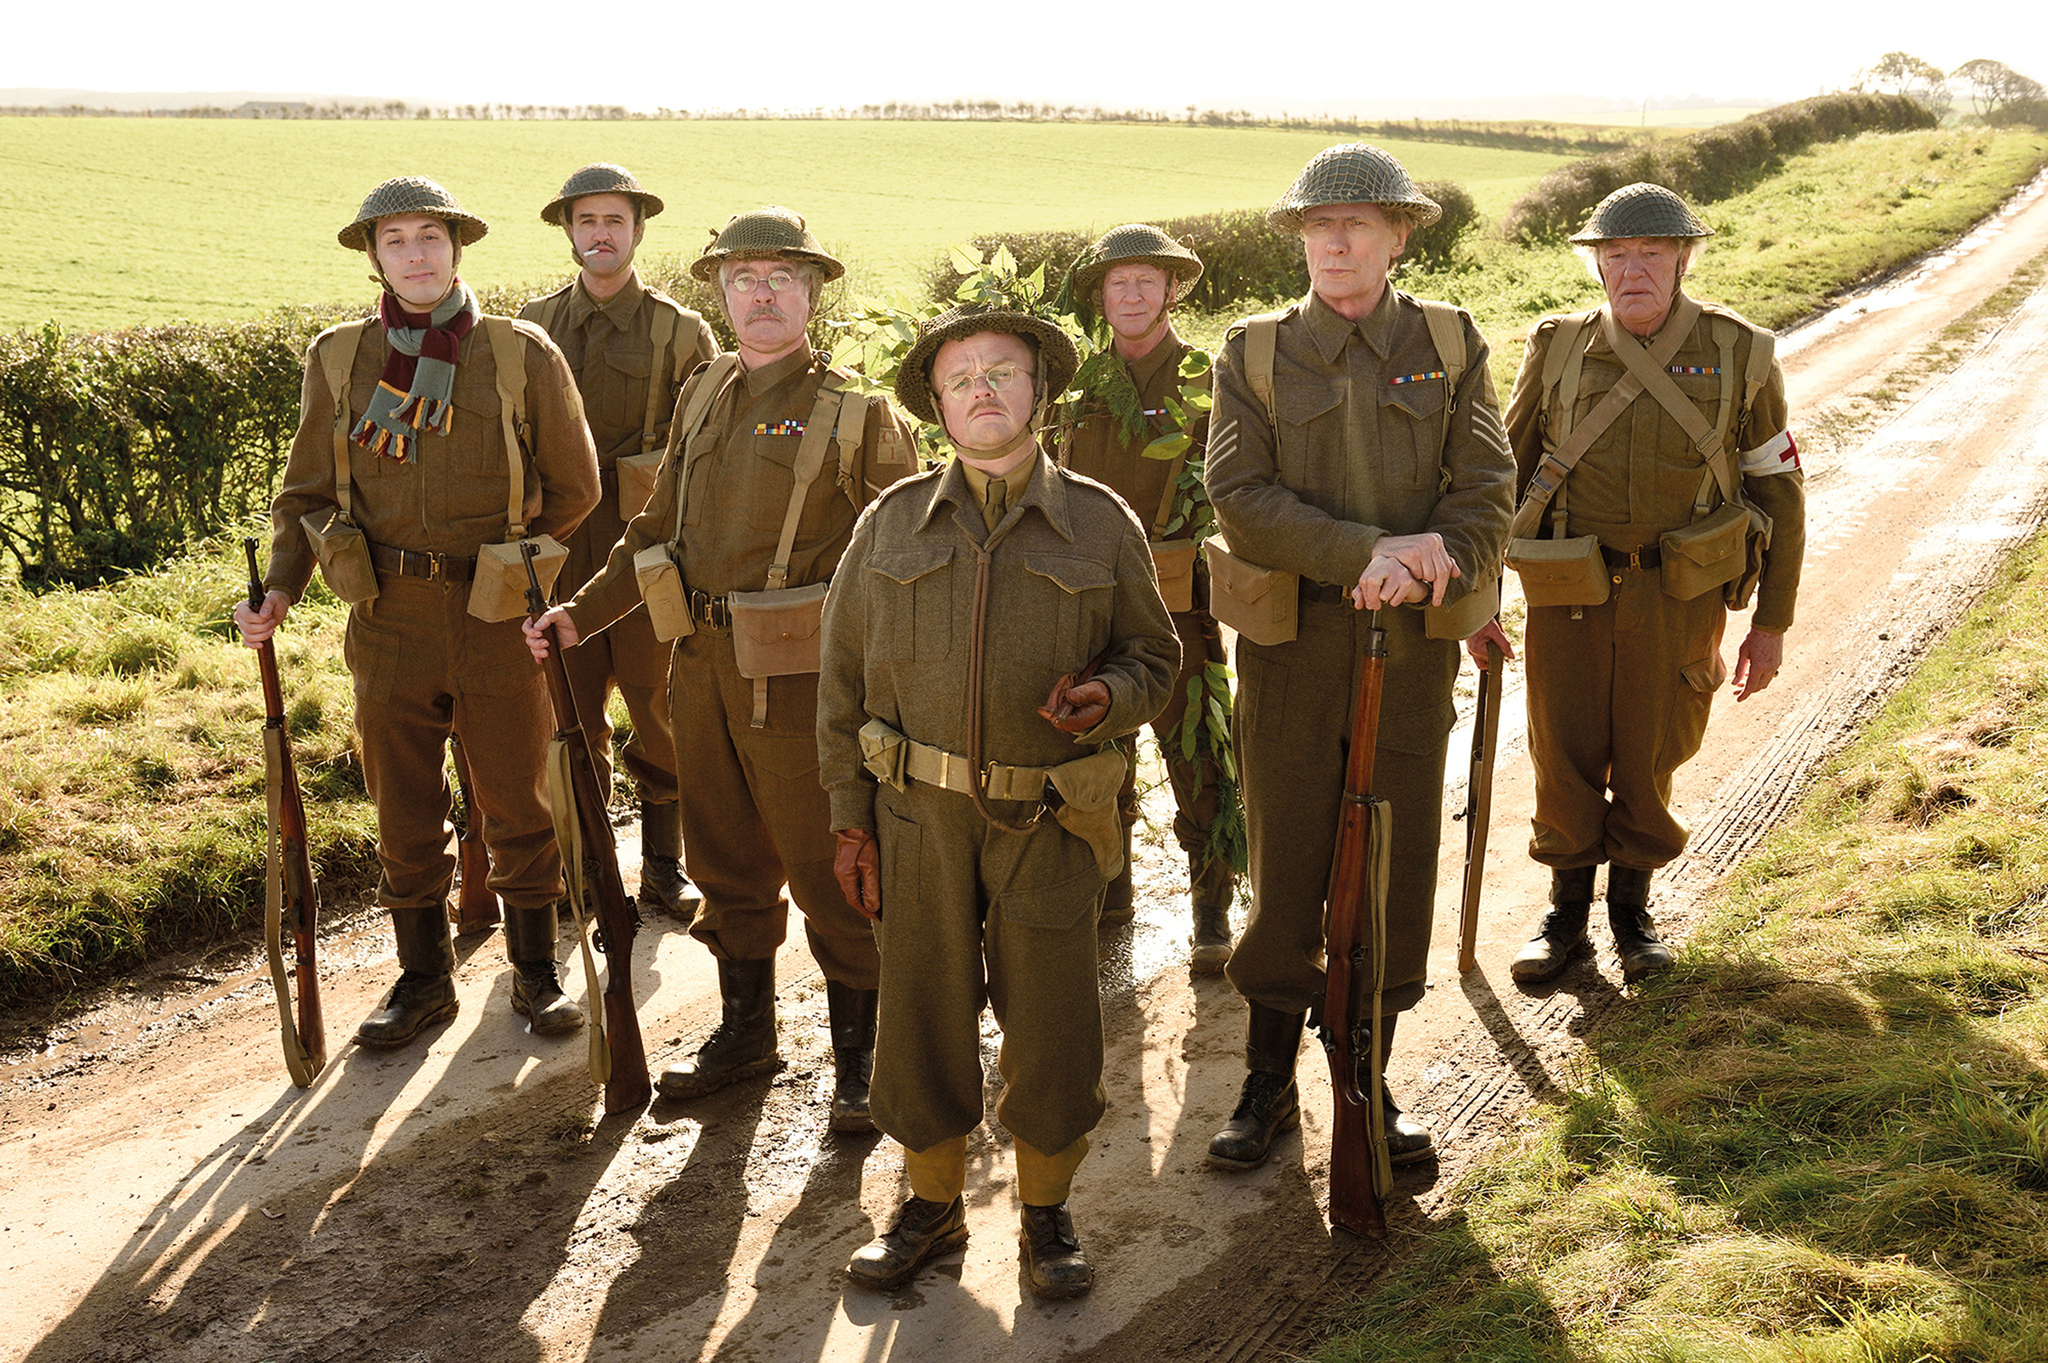 The main cast of the 2015 Dad's Army film - (left to right) Frank Pike (Blake Harrison), Walker (Daniel Mays), Jones (Tom Courtenay), George Mainwaring (Toby Jones), Arthur Wilson (Bill Nighy), Frazer (Bill Paterson), Godfrey (Michael Gambon) (Credit: Universal Pictures/PA Wire)